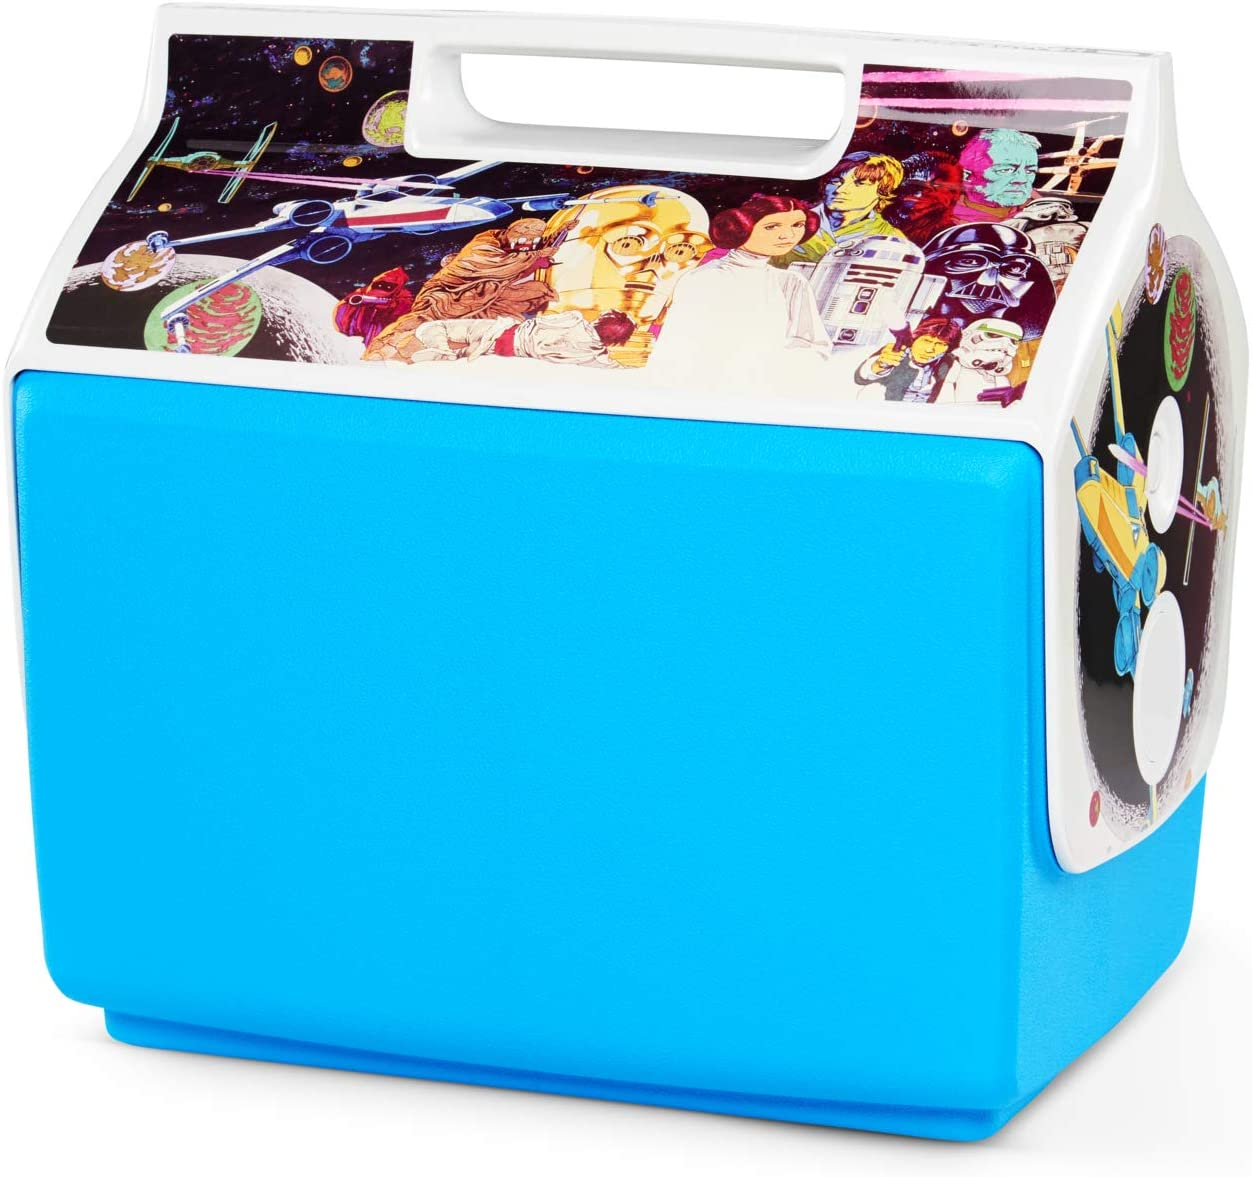 Igloo Limited Edition Playmate Coolers